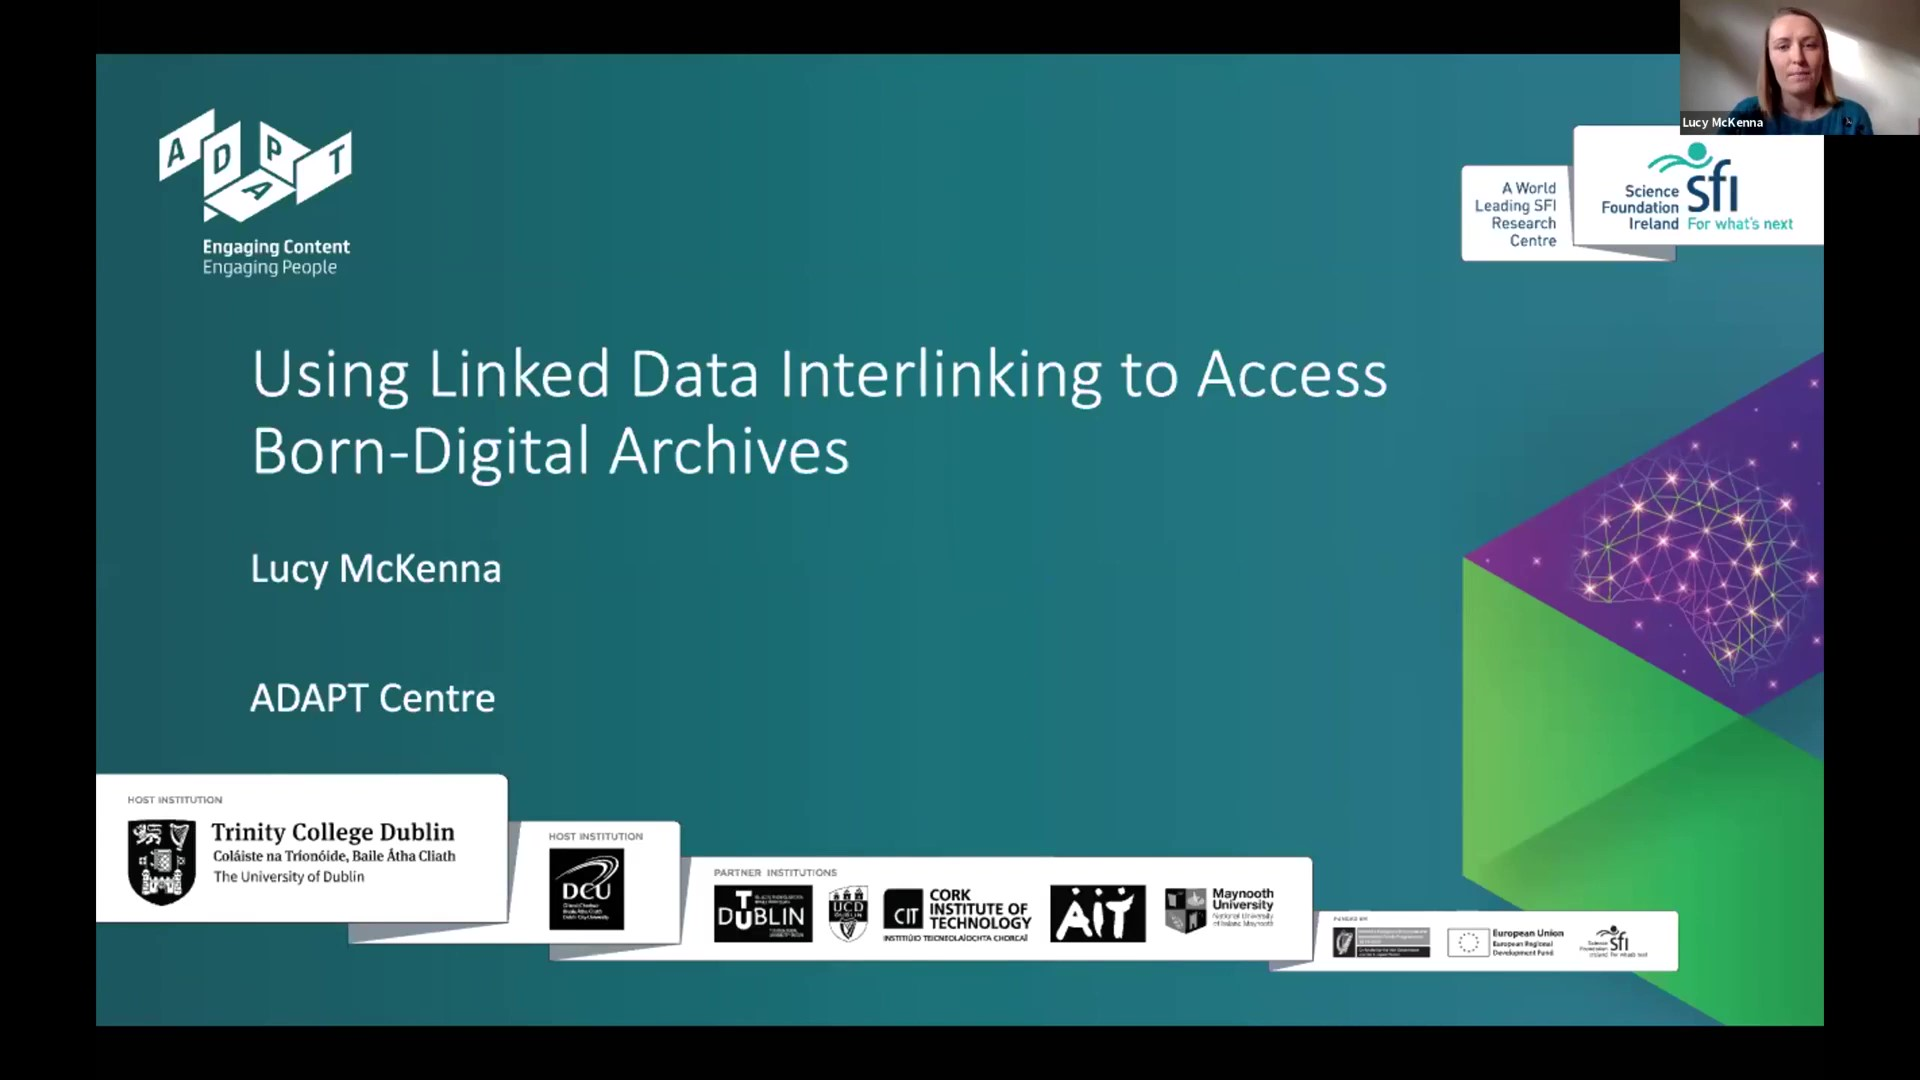 Workshop 1 – Lucy McKenna – Using Linked Data Interlinking to access born-digital archives